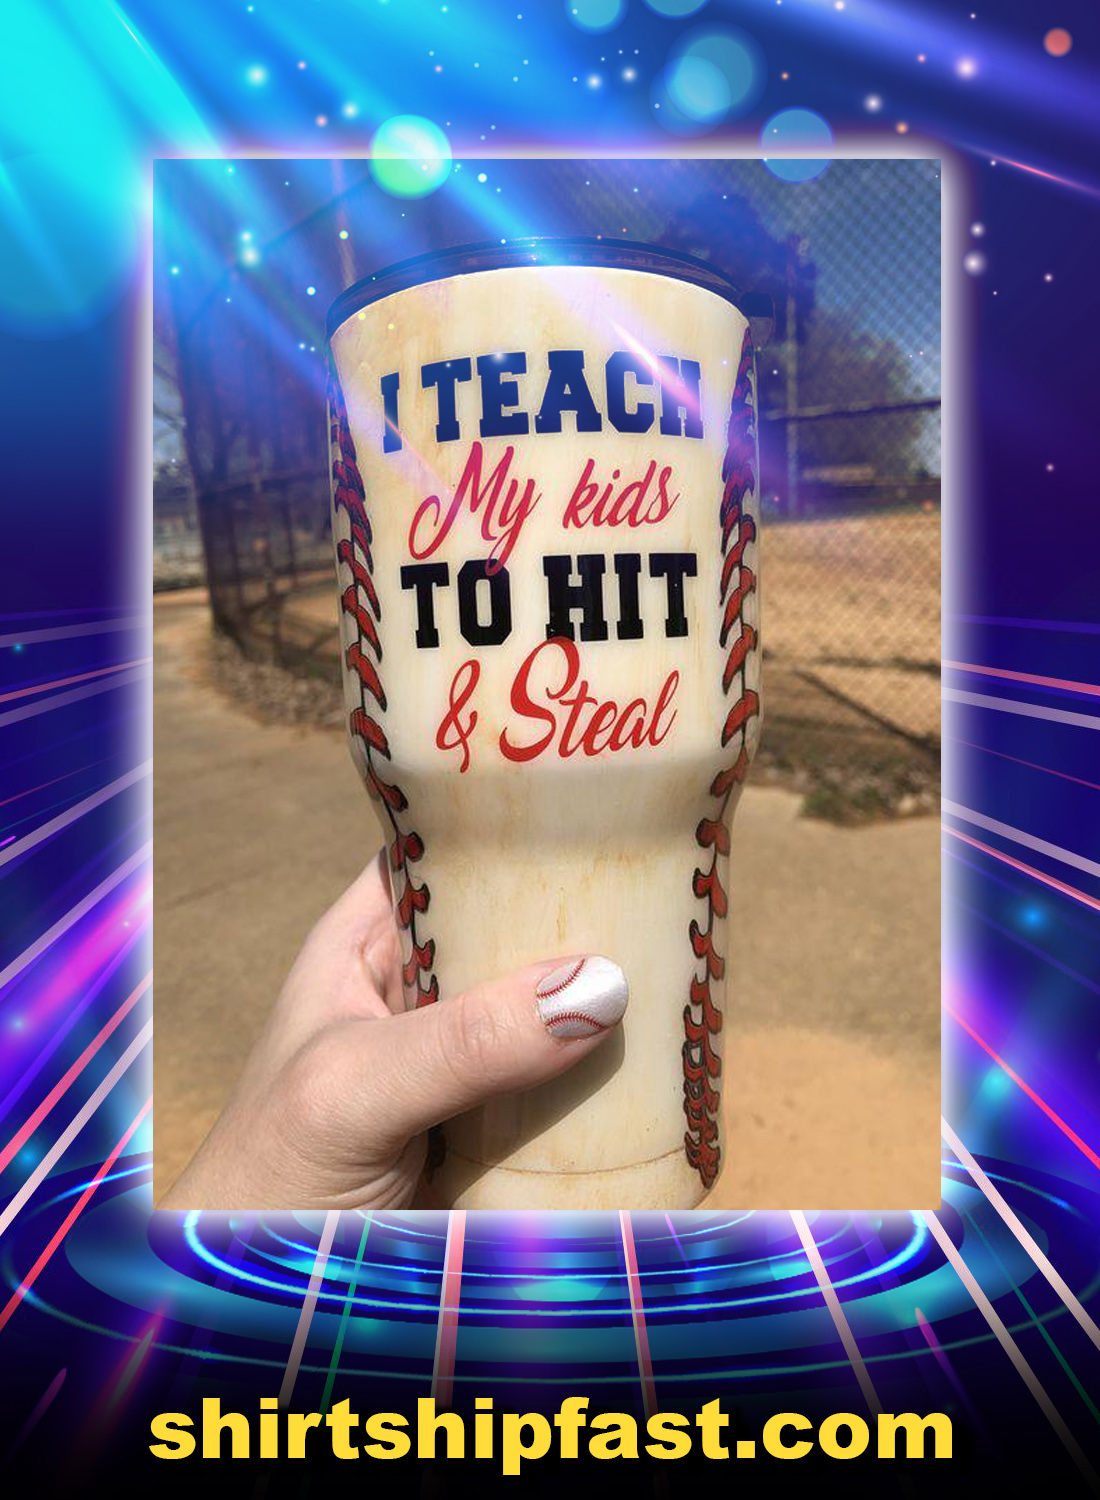 Baseball i teach my kids to hit and steal tumbler - Picture 1